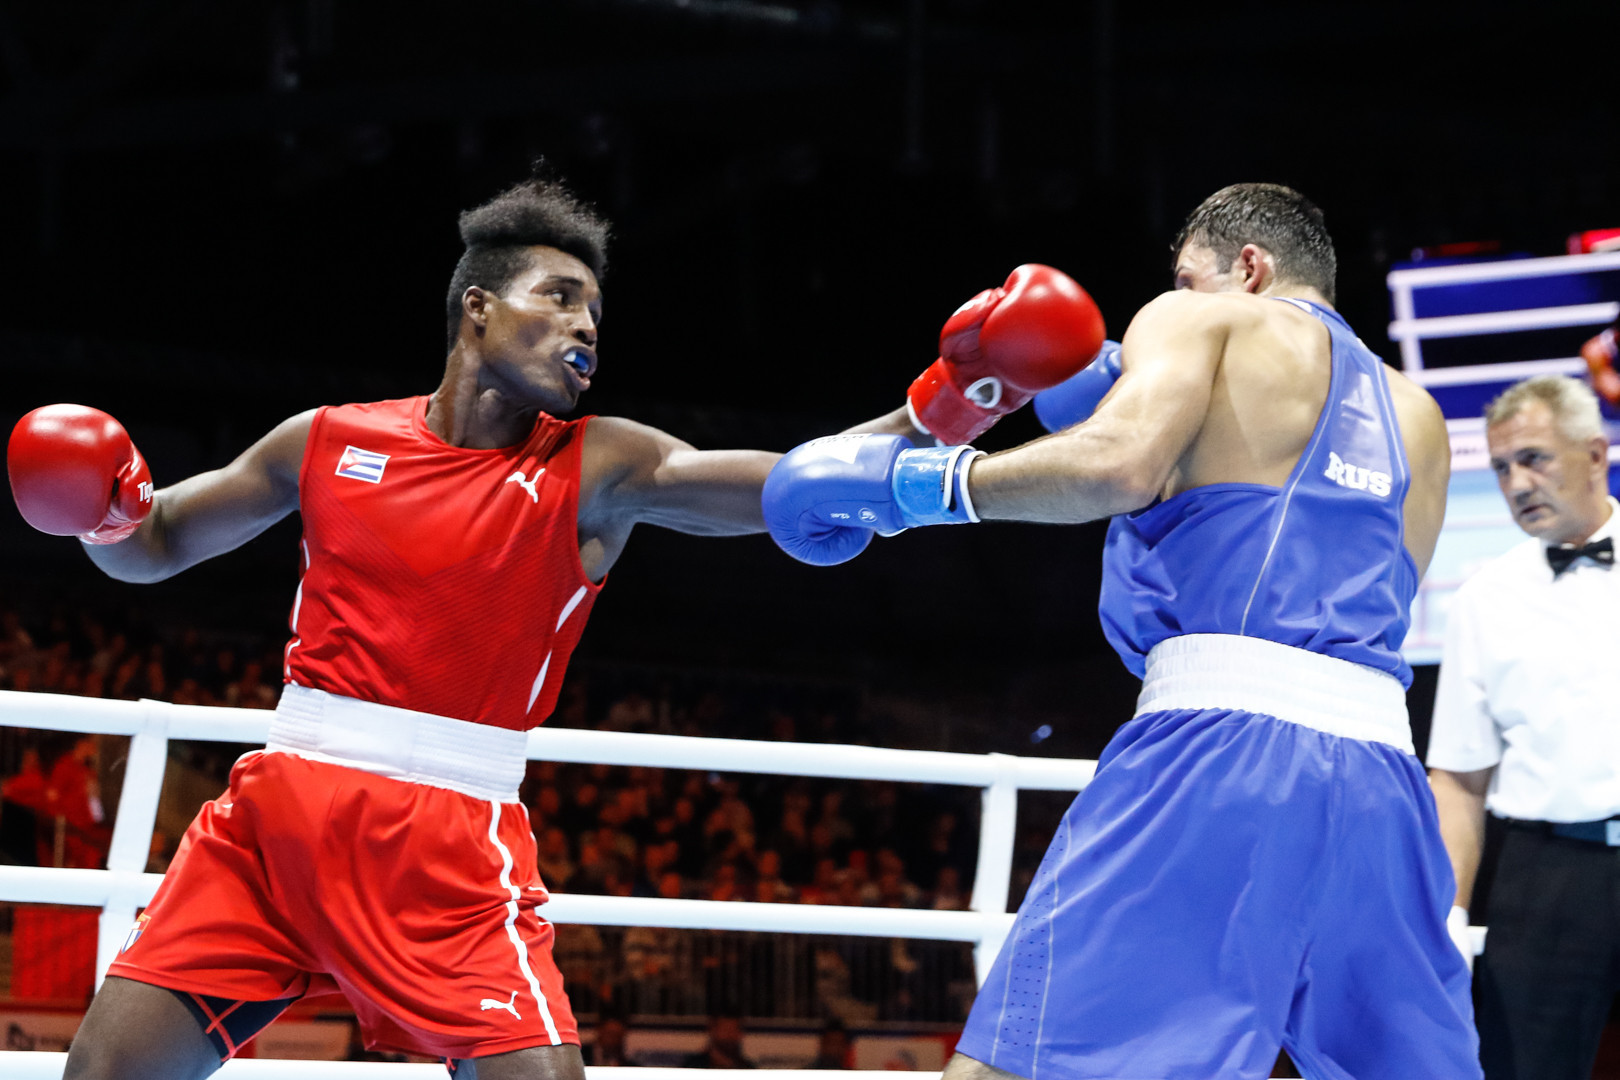 Cuba's Julio La Cruz continued his campaign for a fifth light heavyweight world title against Russia's Georgii Kushitashvili, the division's eighth seed ©Yekaterinburg 2019